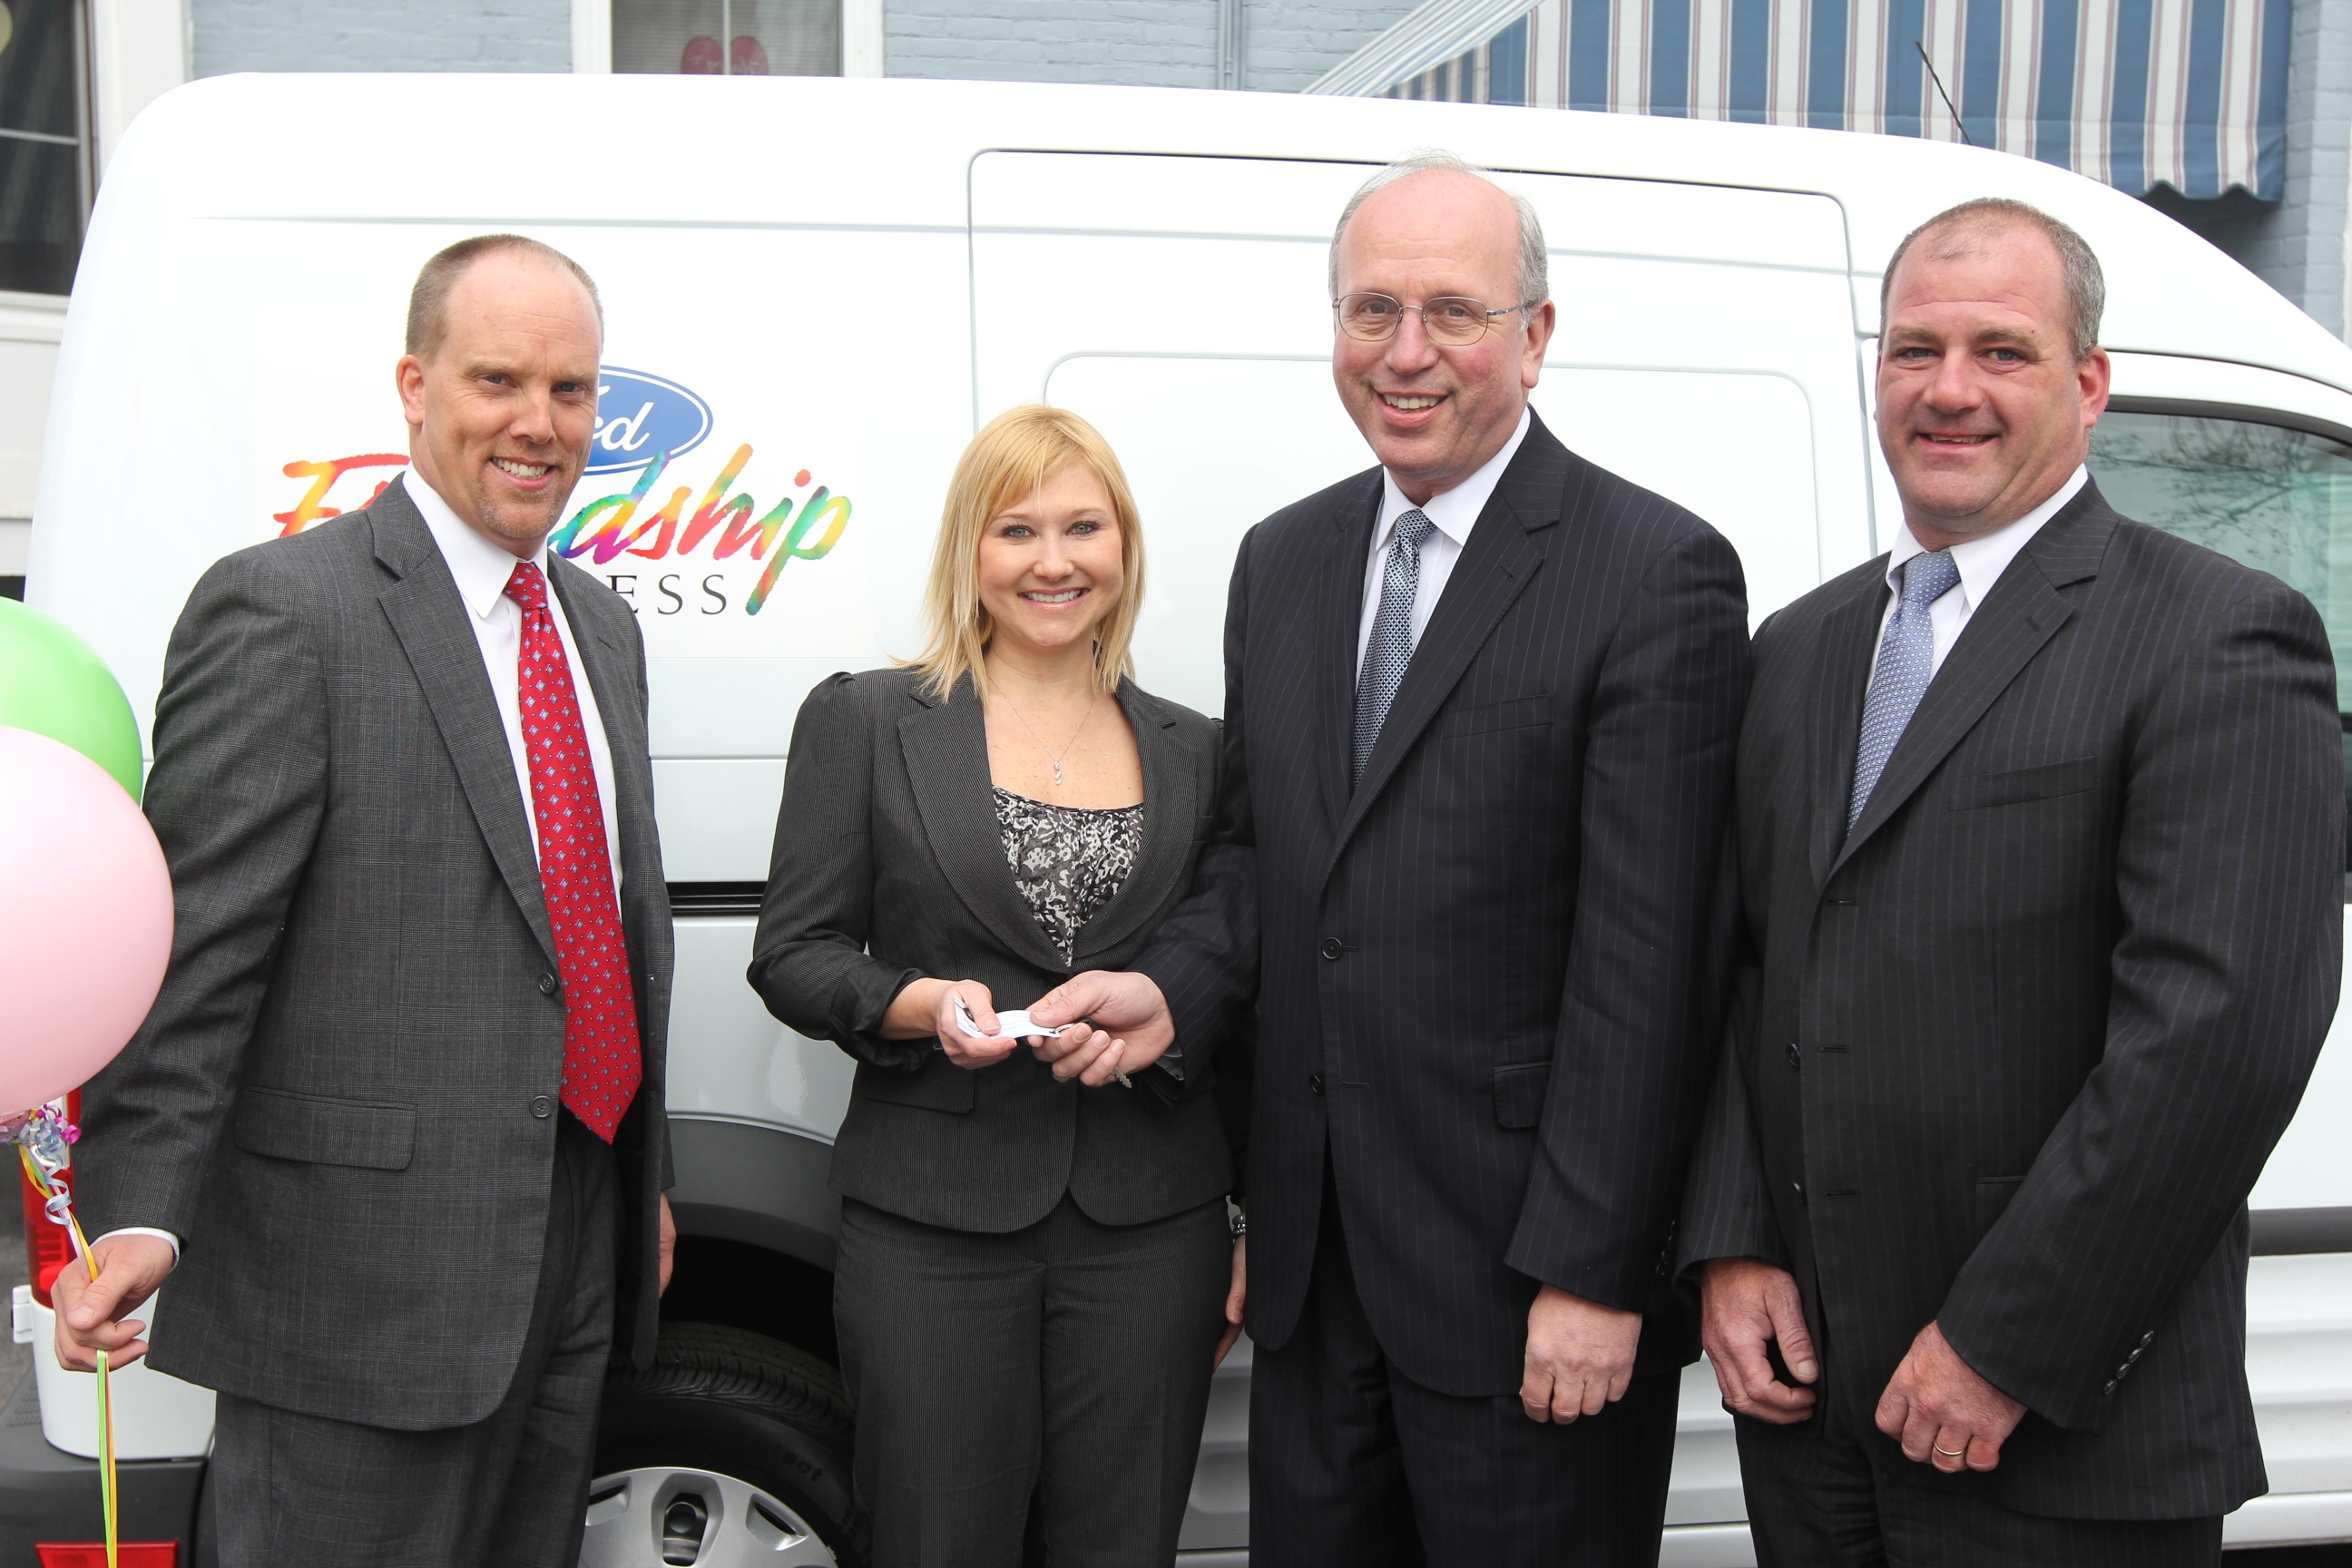 WNY Ford Dealers, Scott Bieler and Peter DeLacy, award new Ford Friendship Express van to The Bristol Home in Buffalo, NY